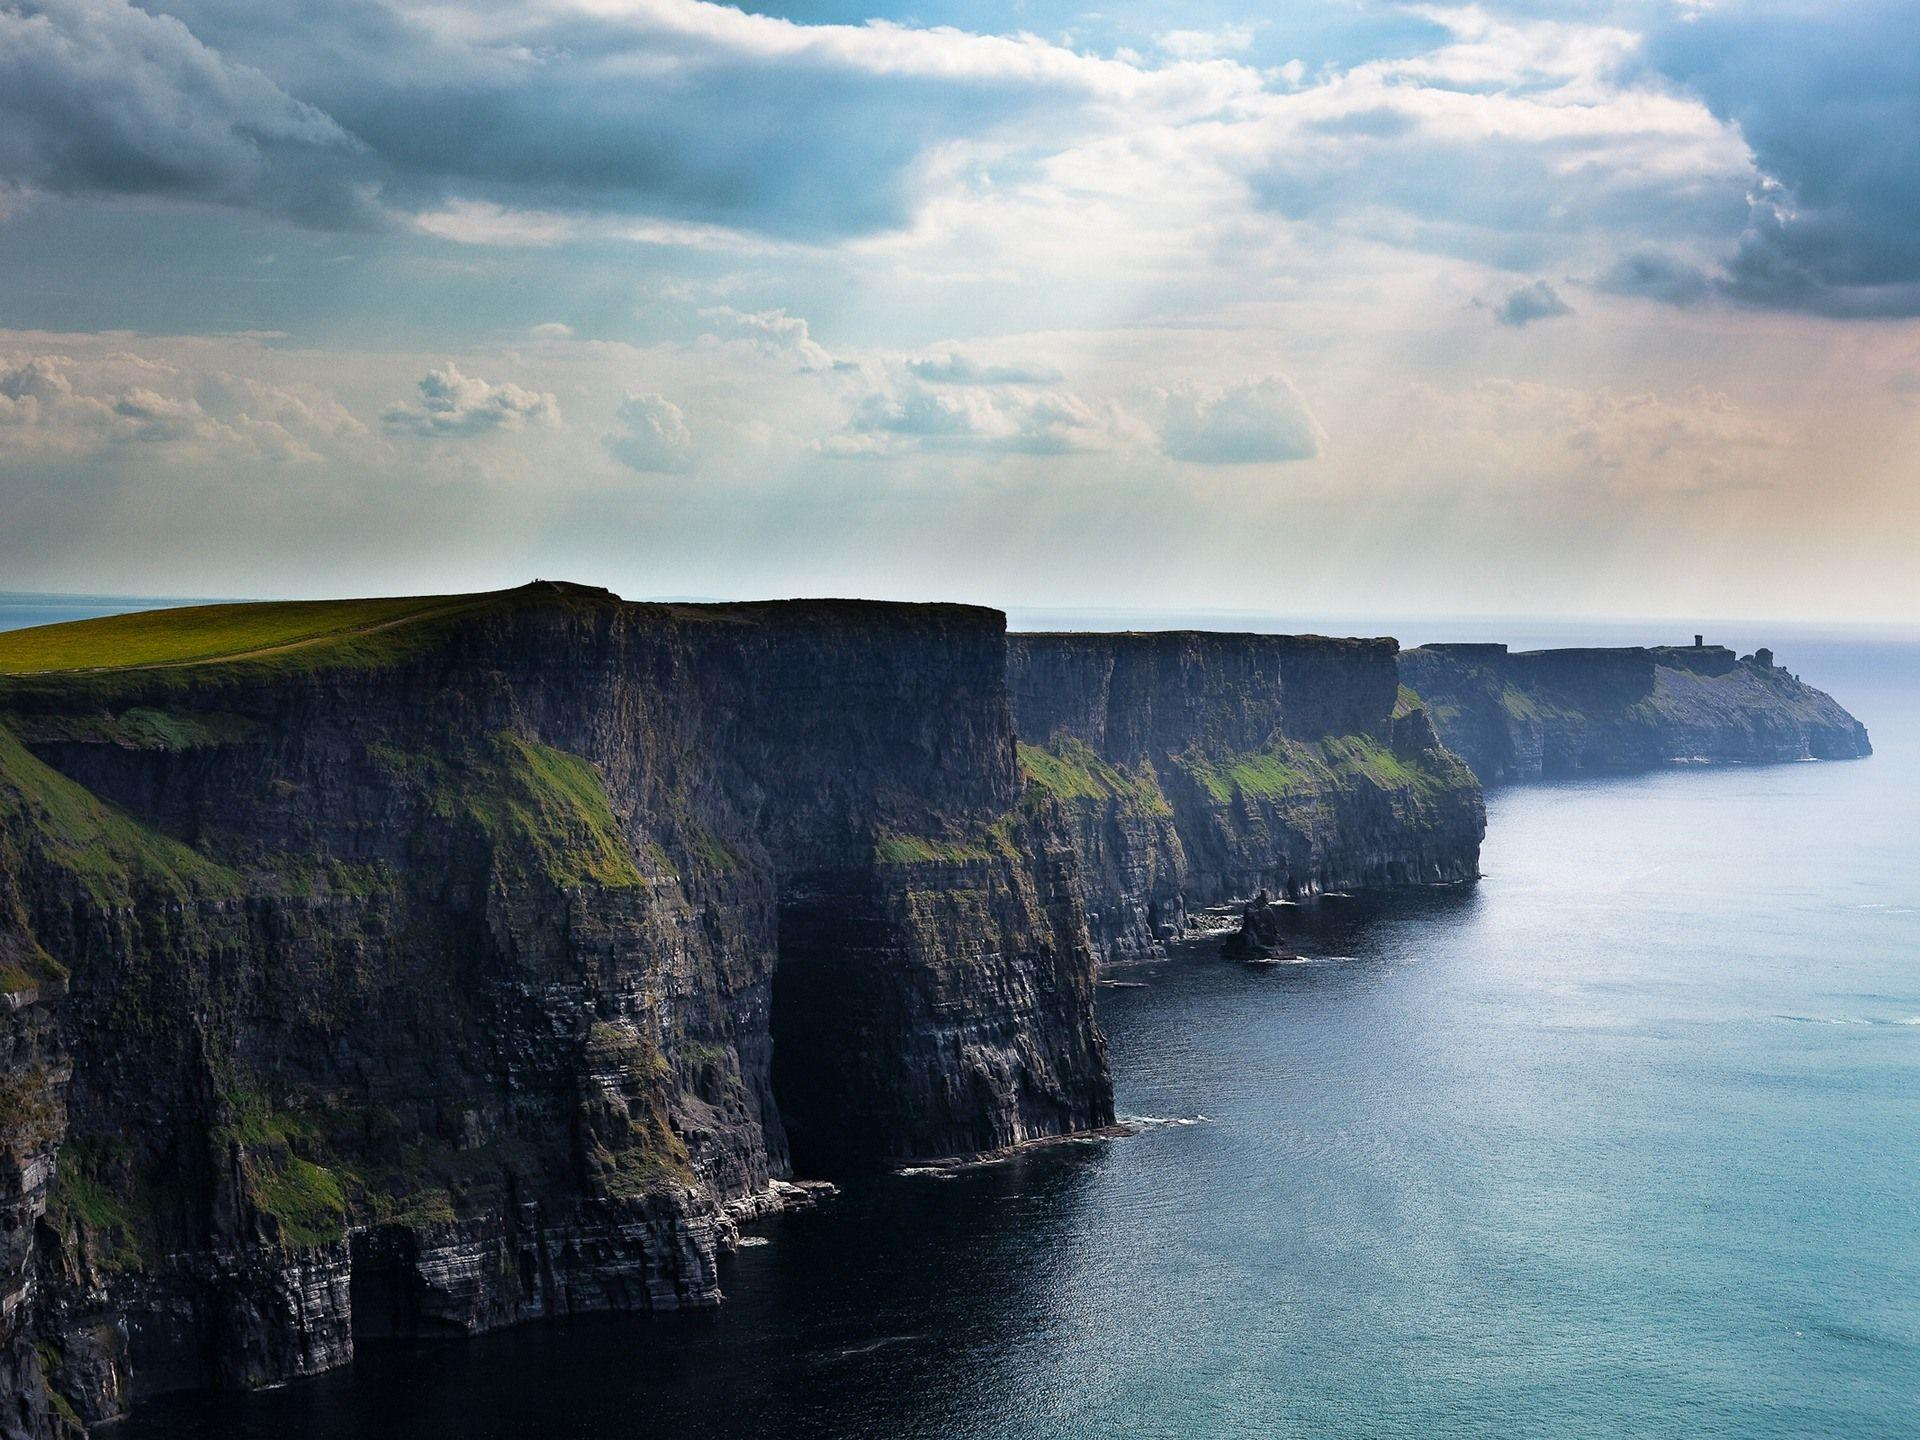 Cliffs of Moher Wallpapers and Background Images   stmednet 1920x1440